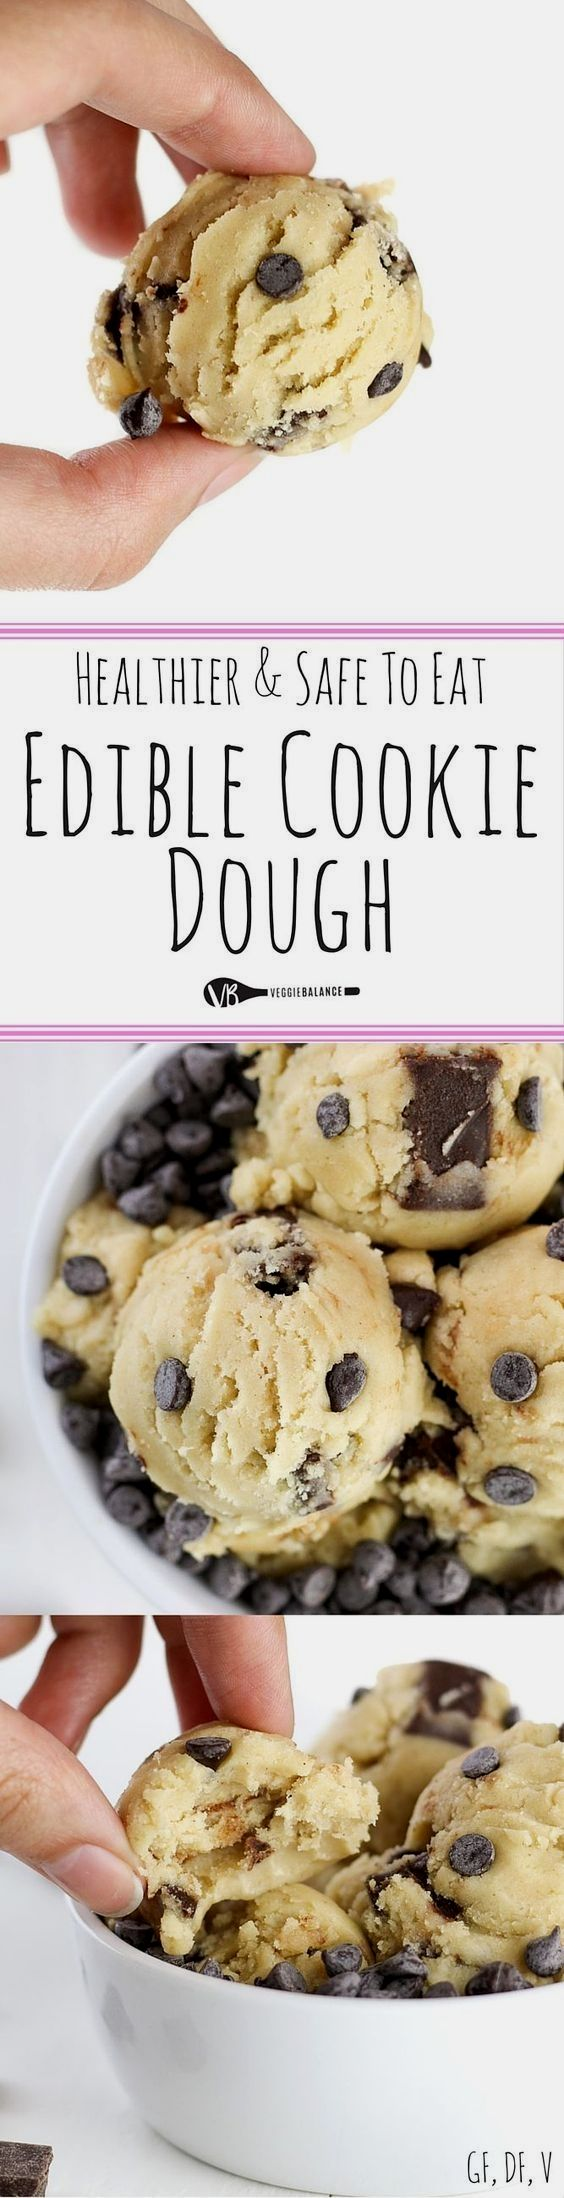 Edible Cookie Dough recipe and How-To Make it Healthy, Gluten-Free, Dairy-Free and Lower-sugar! Made edible and egg-less with just 7 simple ingredients!